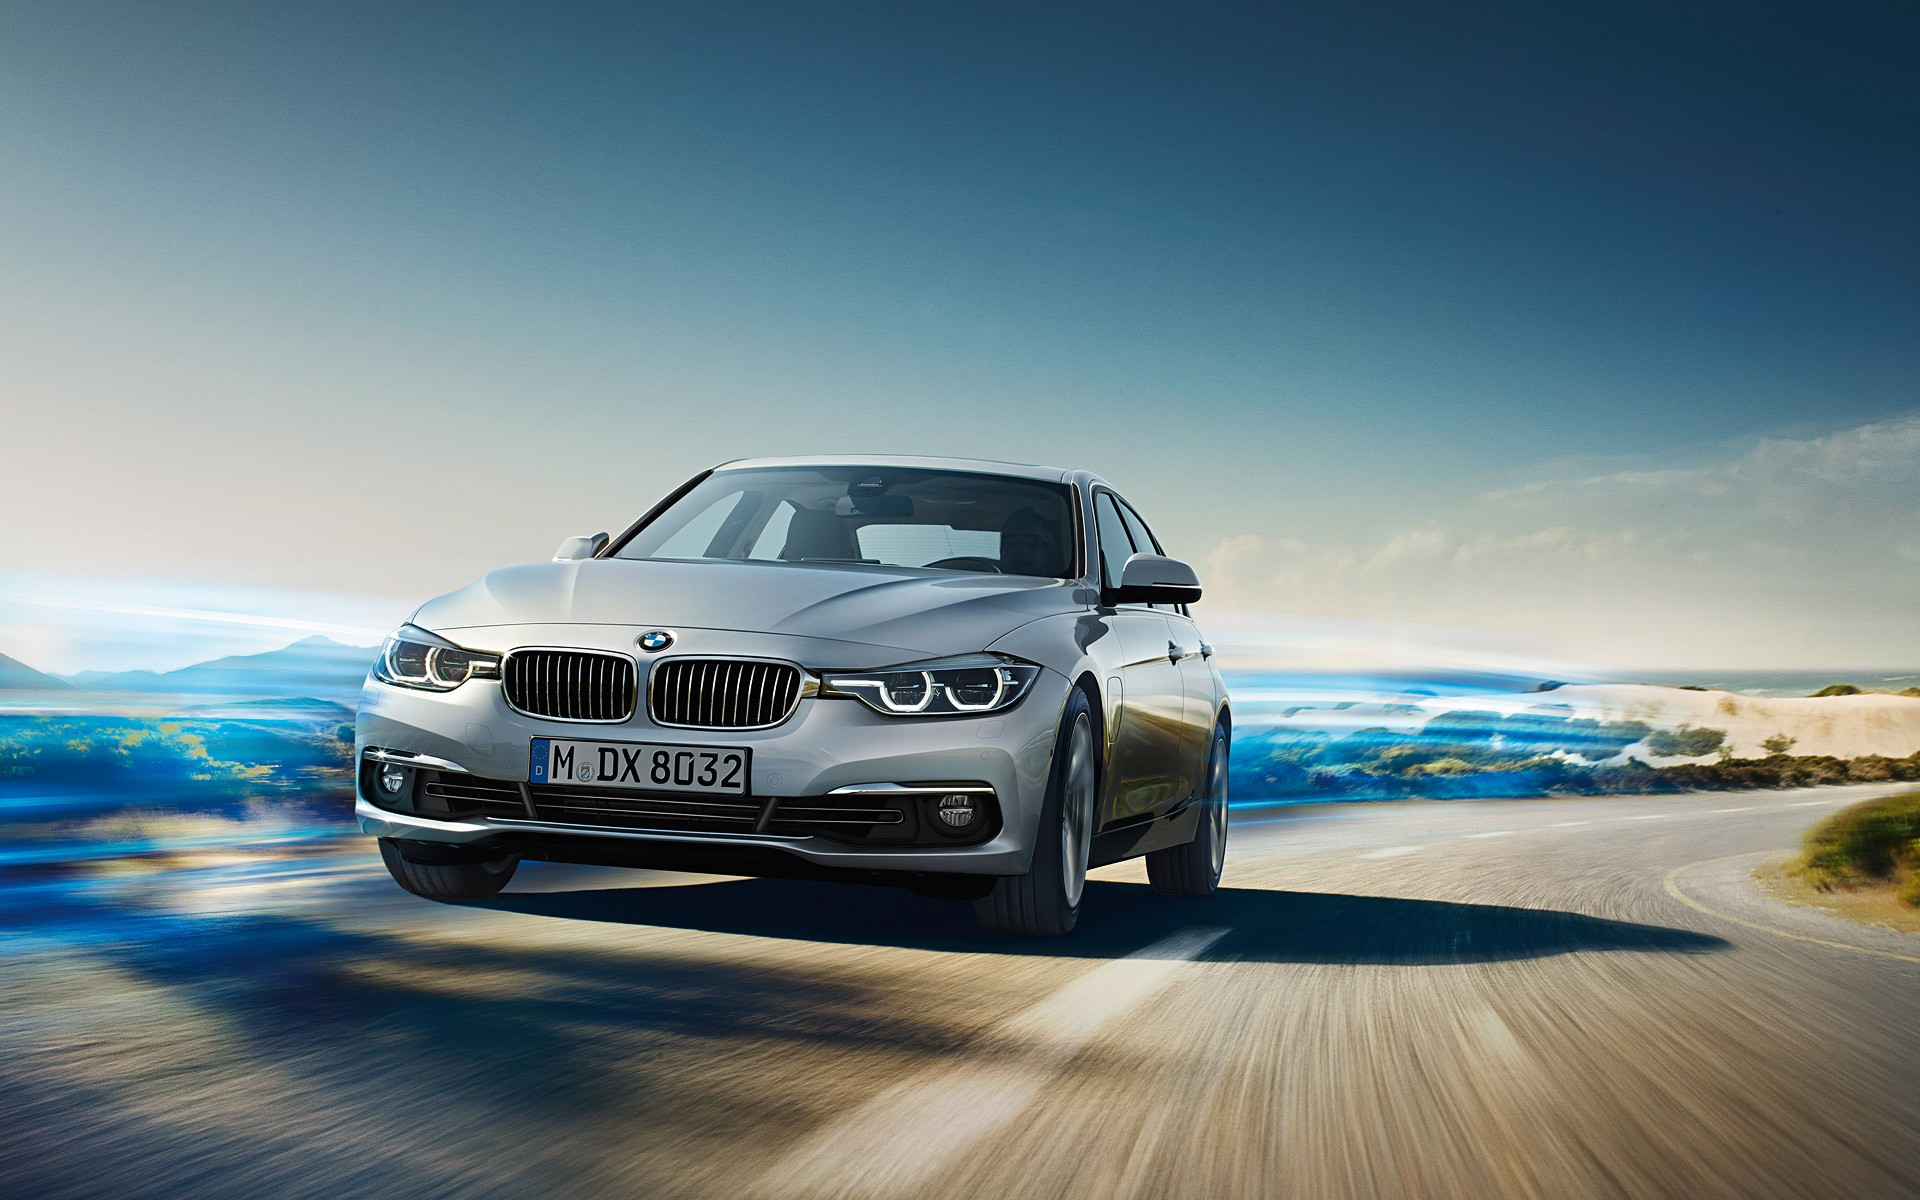 2017 Bmw 340i Xdrive >> Your Batch of 2016 BMW 3 Series Facelift Wallpapers Is Here - autoevolution